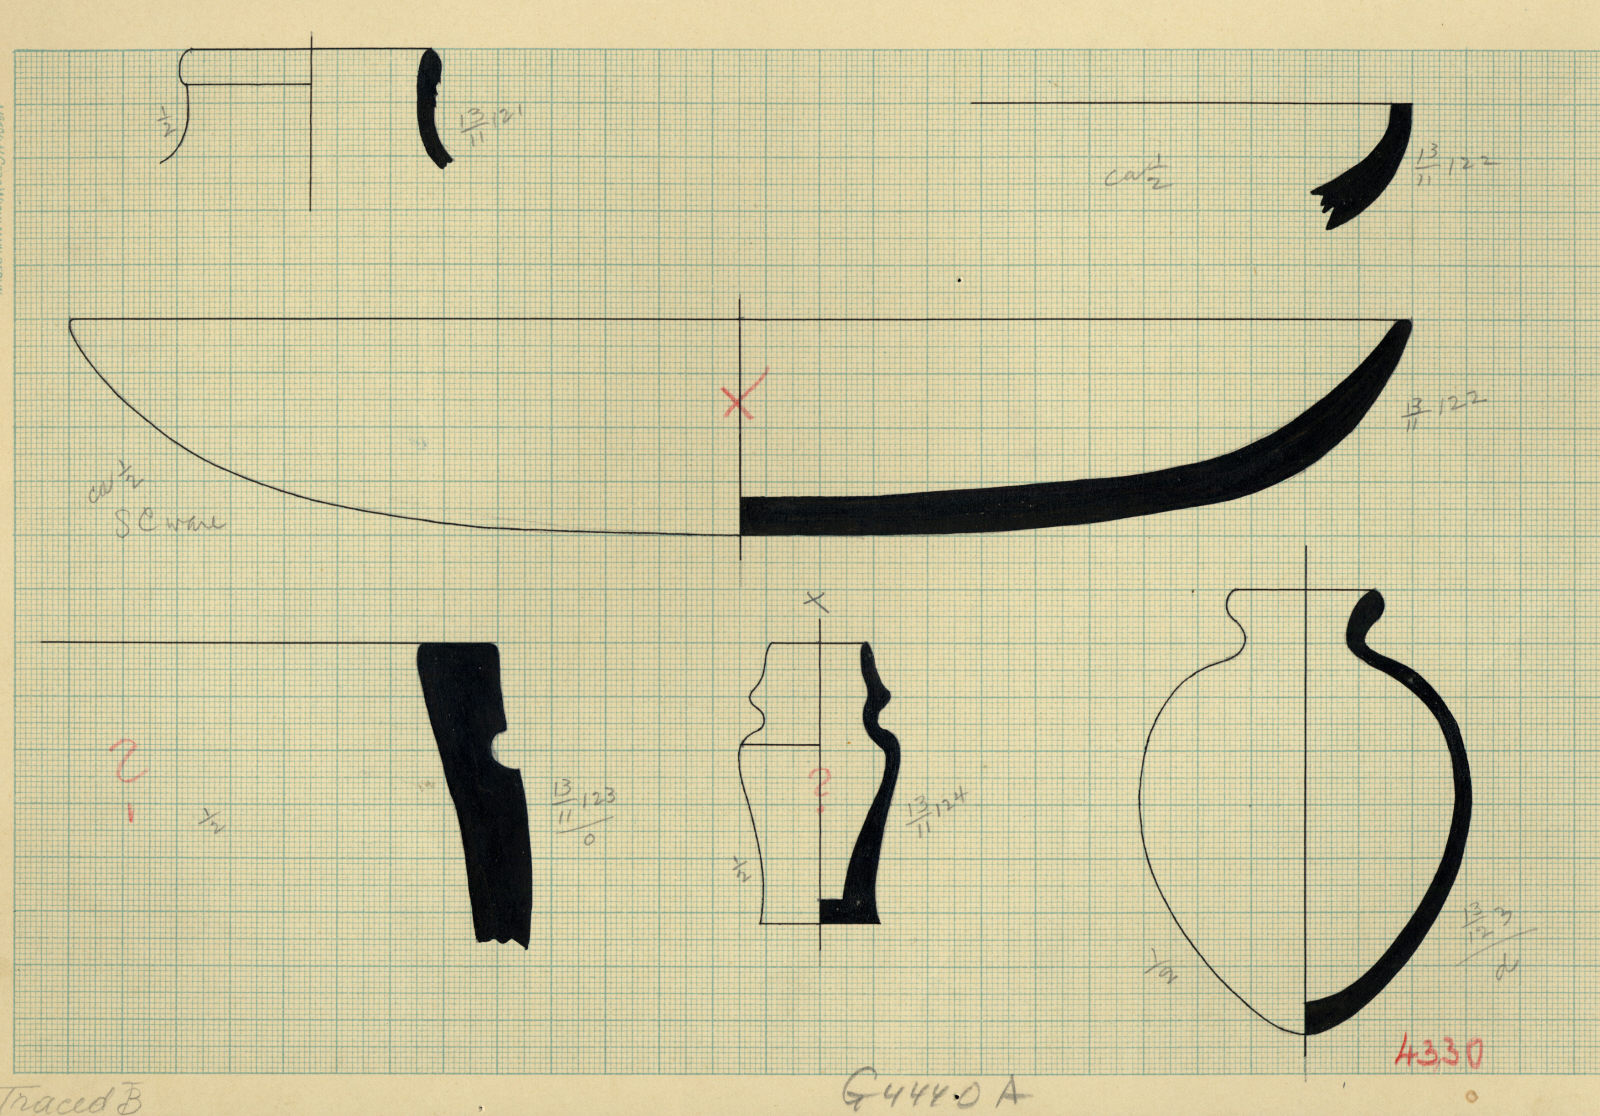 Drawings: Pottery from G 4330, Shaft A, and G 4440, Shaft A